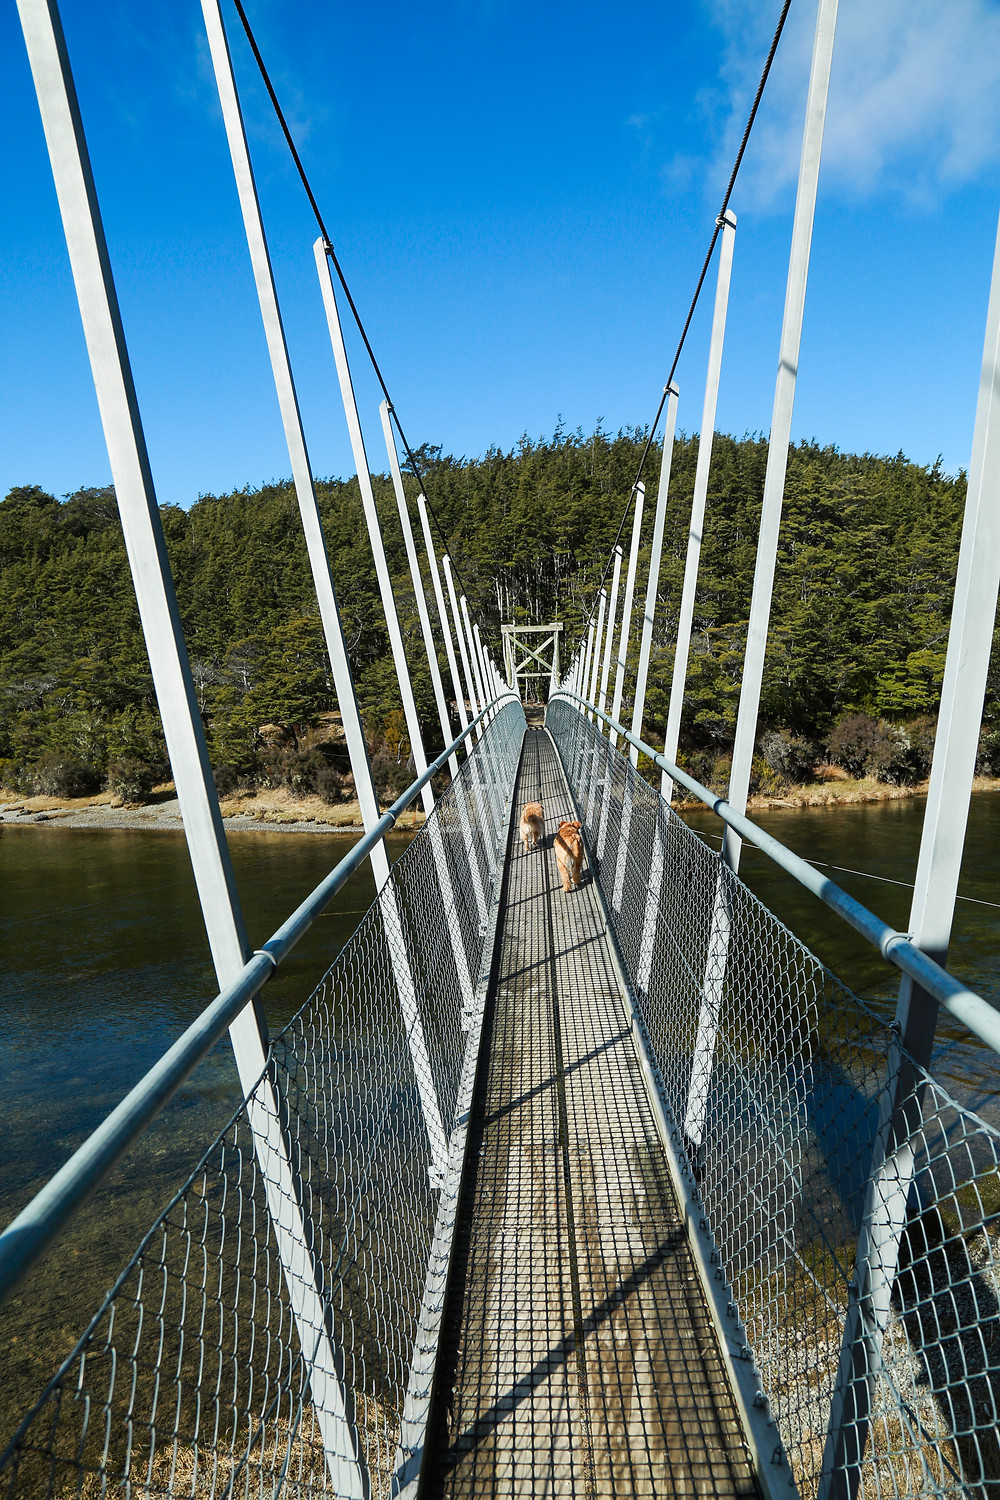 Saaschi's first time on a swing bridge